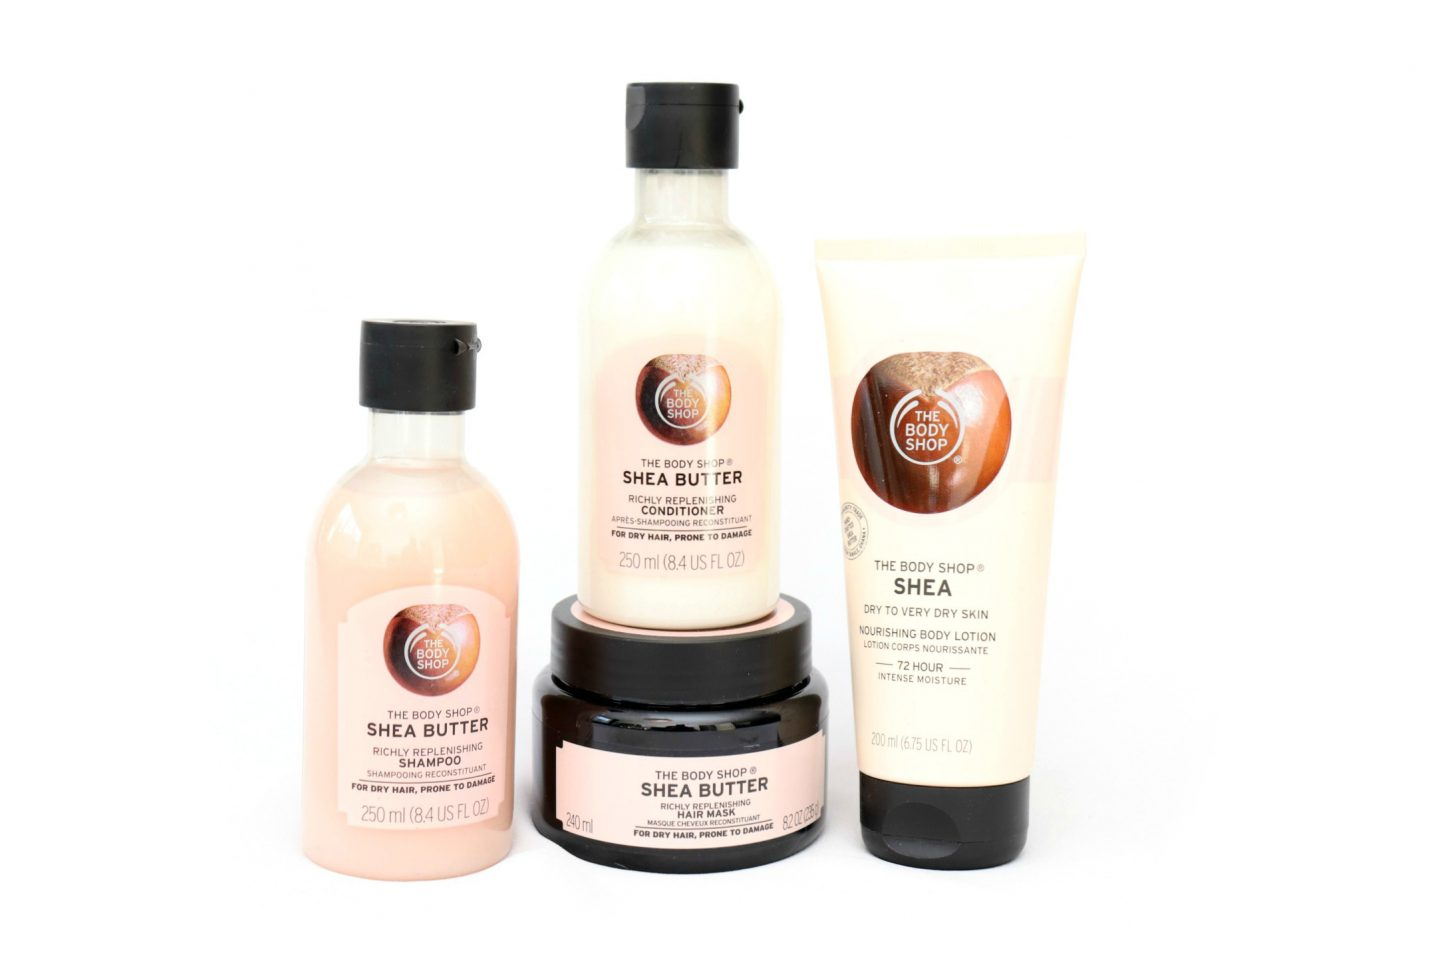 The Body Shop New Shea Butter Products Review